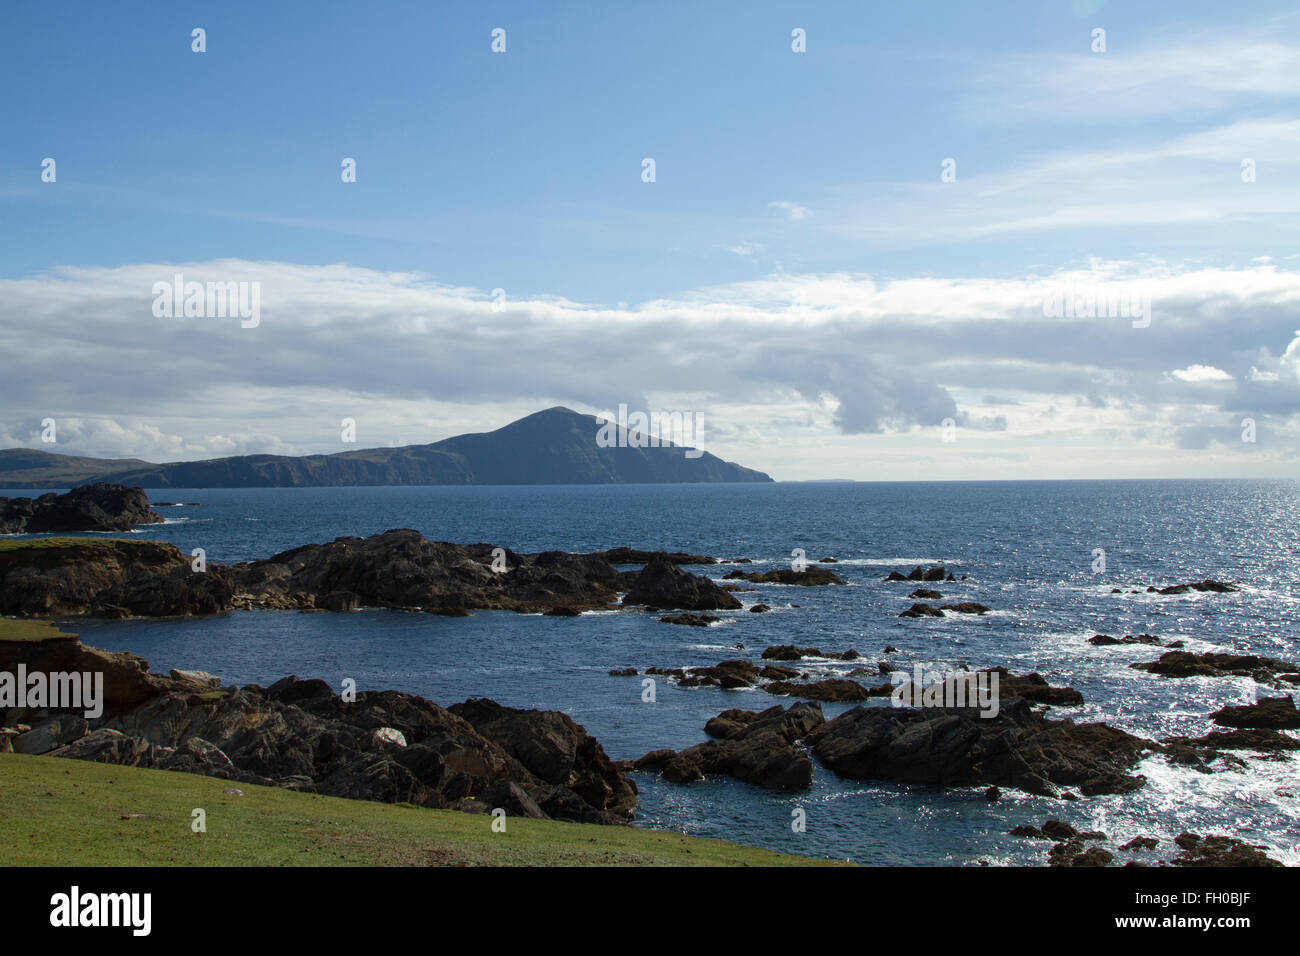 A rock foreshore on Achill island, Co. Mayo in the west of Ireland with the Atlantic and mountain in the background - Stock Image